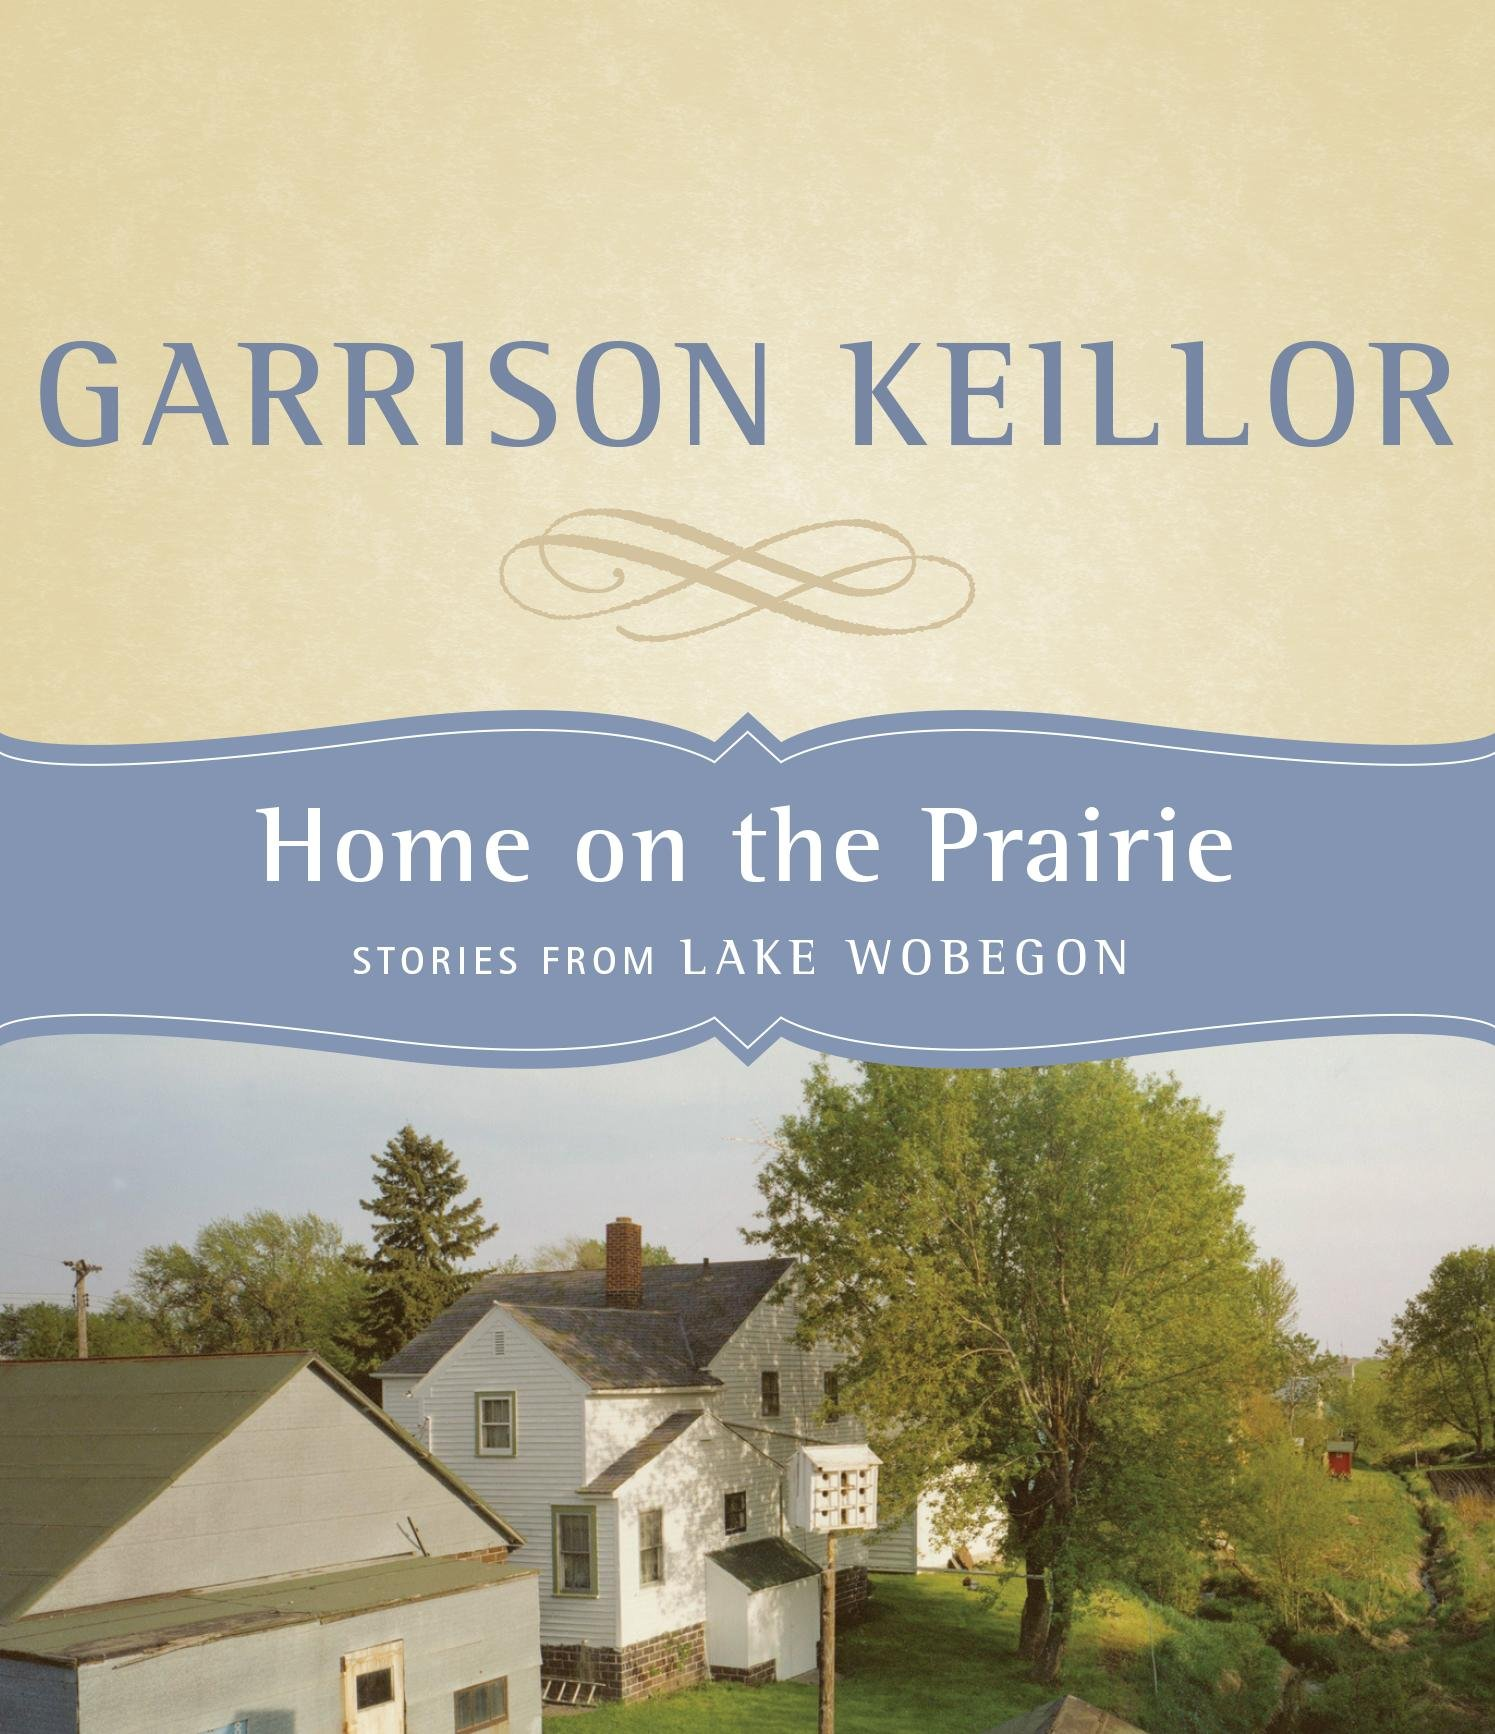 Home on the Prairie: Stories from Lake Wobegon: Garrison Keillor:  9781565117860: Amazon.com: Books